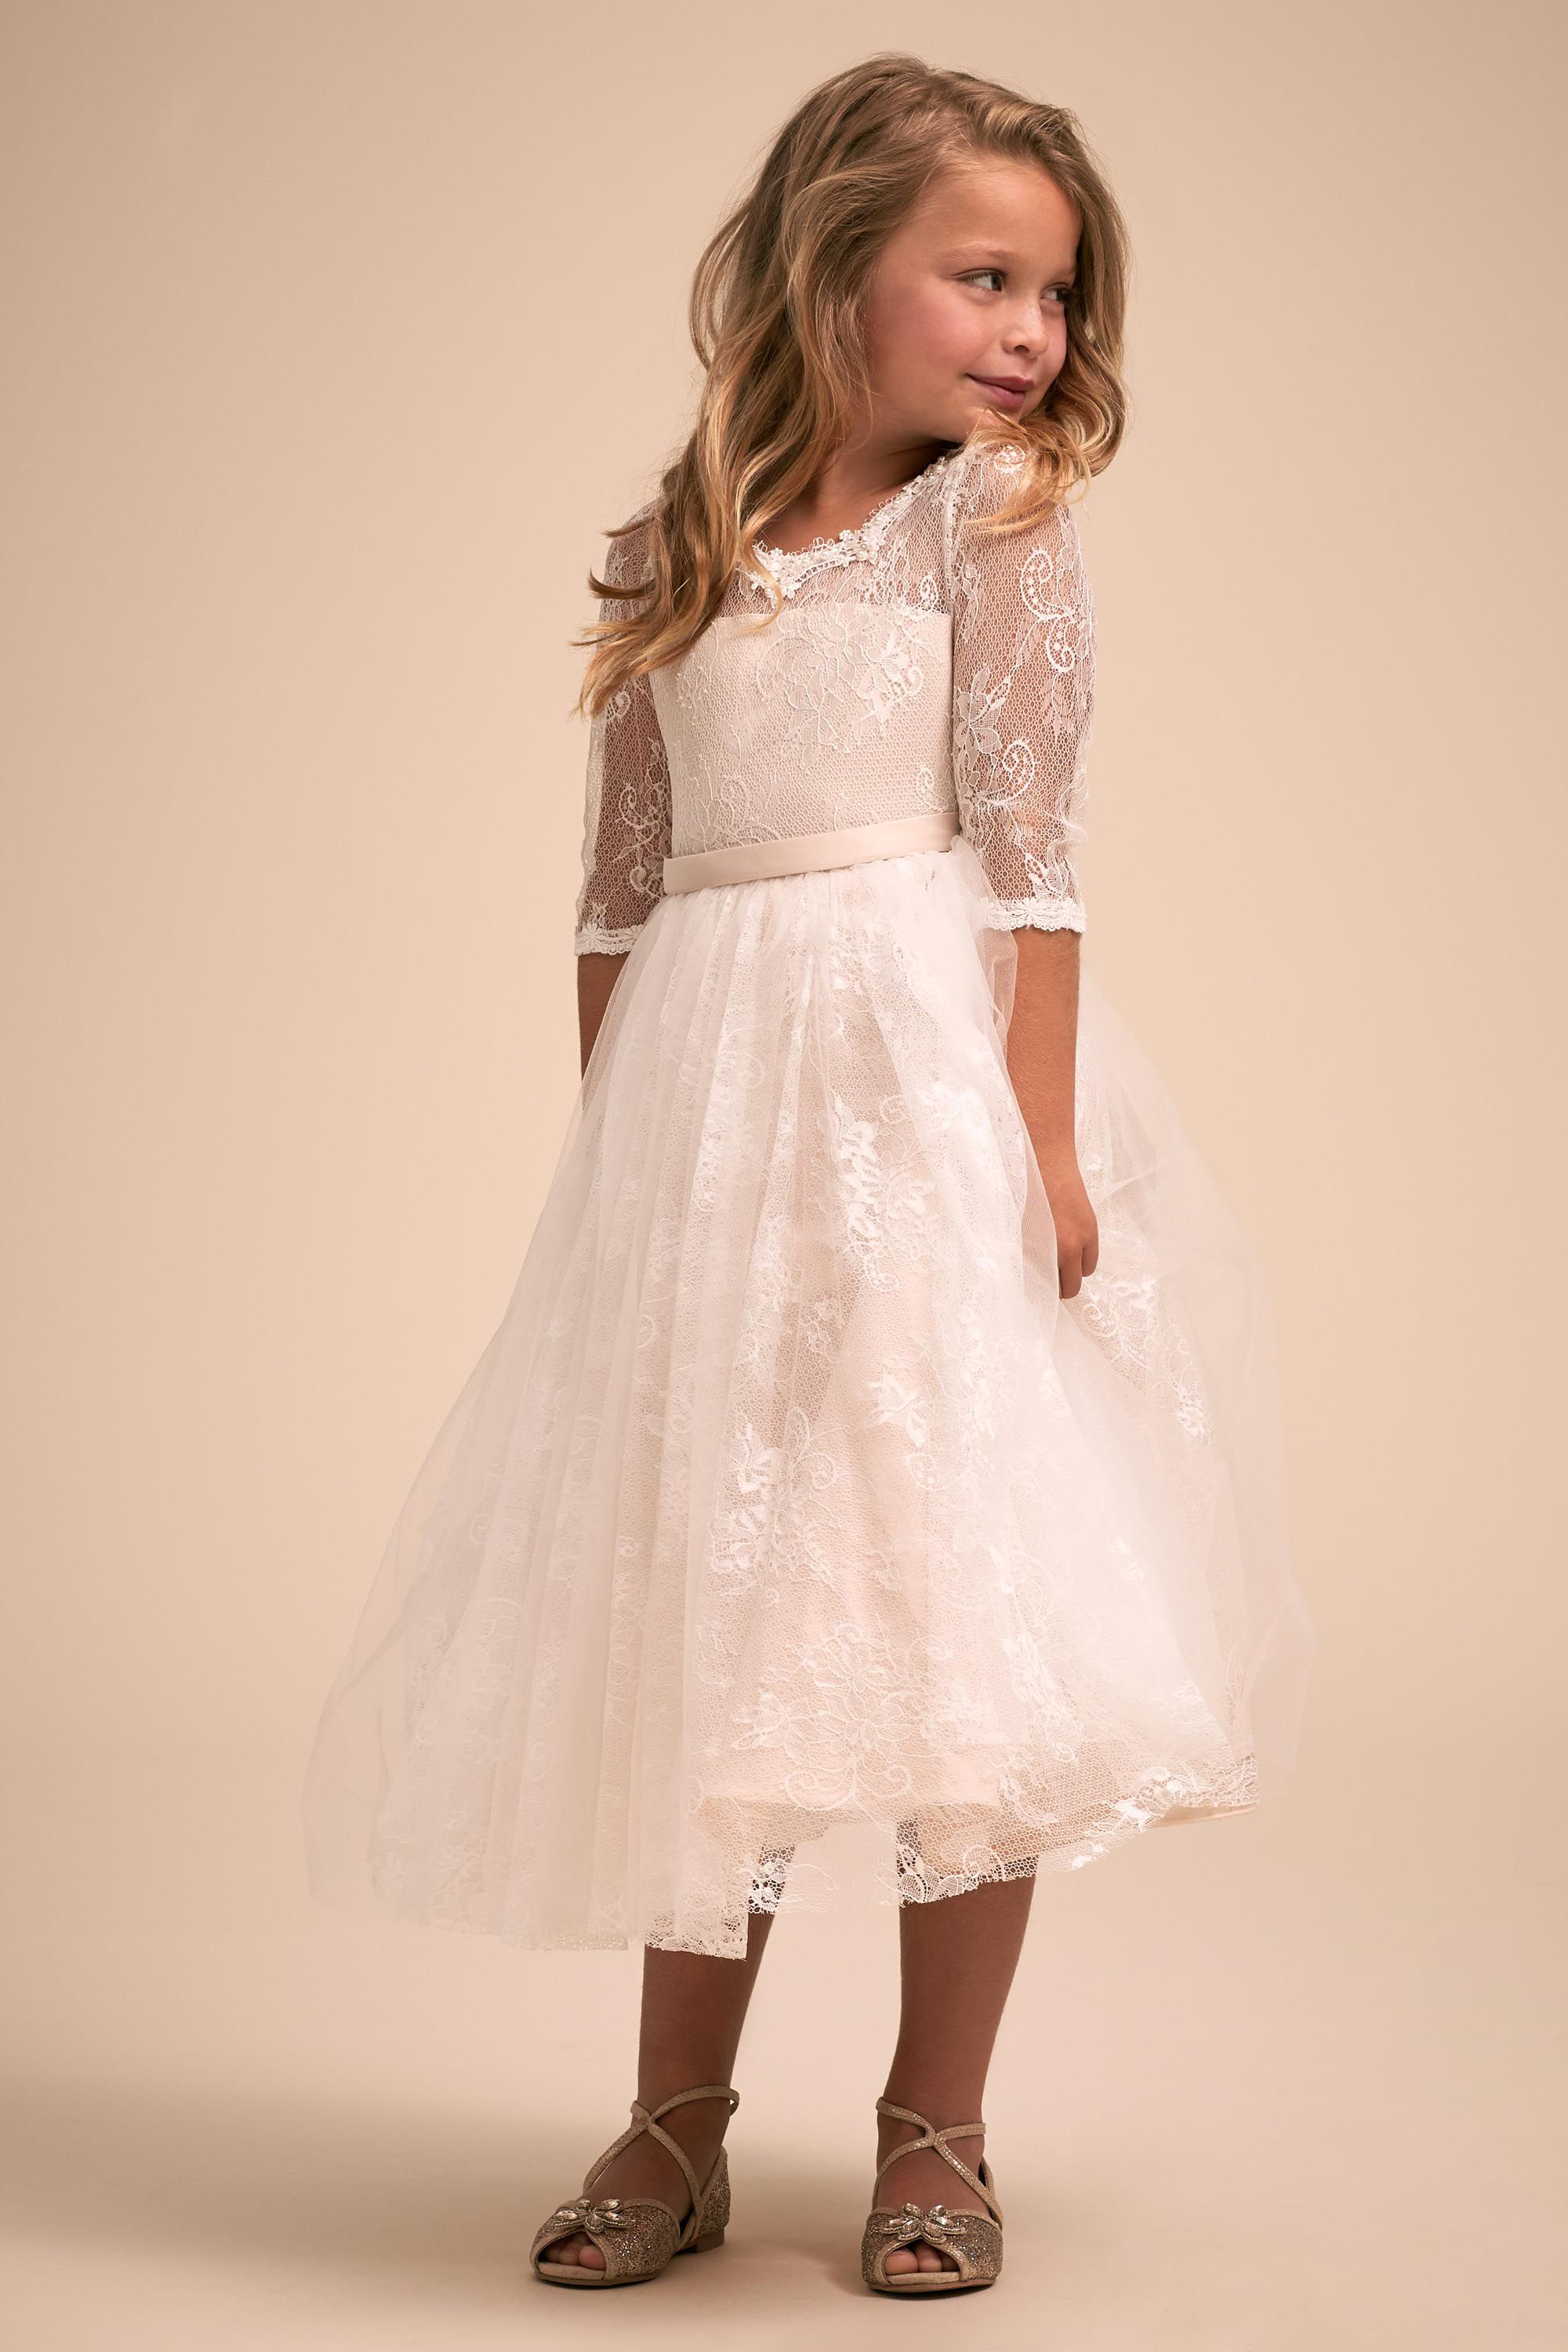 flower girl dress ideas Liana lace flower girl dress from BHLDN